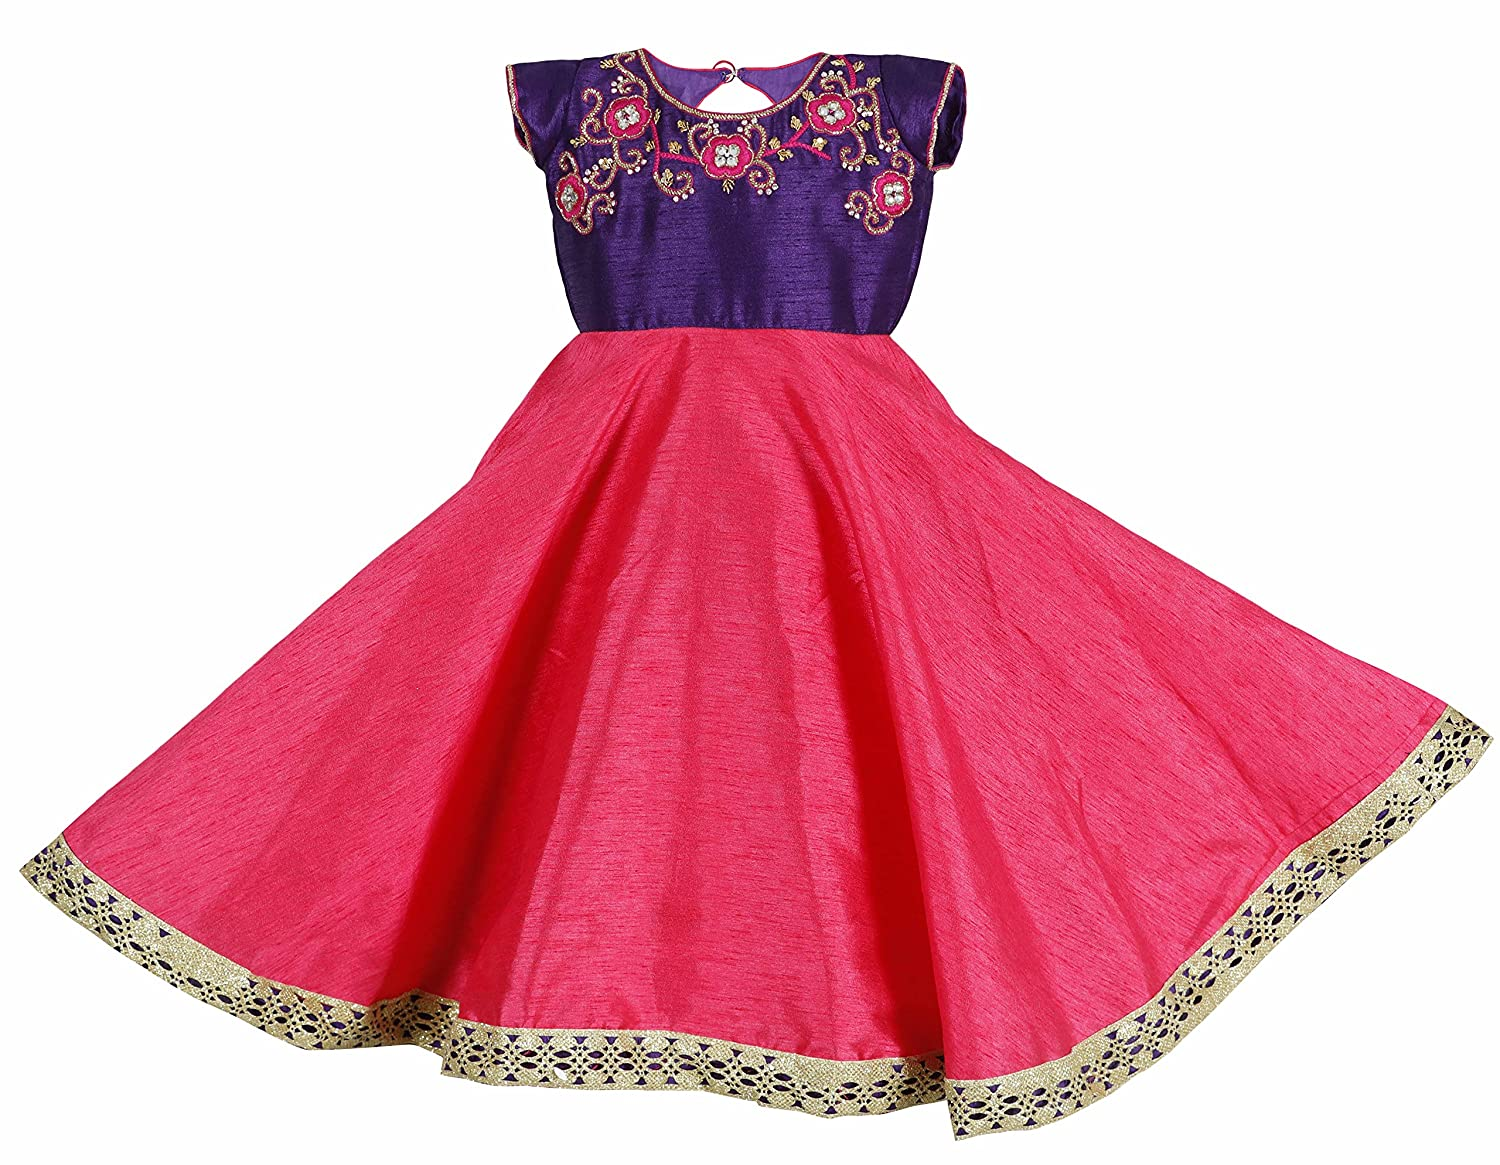 3515d49f72670 LAVIS Latest Designer Baby Girls Traditional Pink and Violet Gown   frock  with Golden Embroidery on Raw Silk Party Wear Dresses  Size available New  Born ...